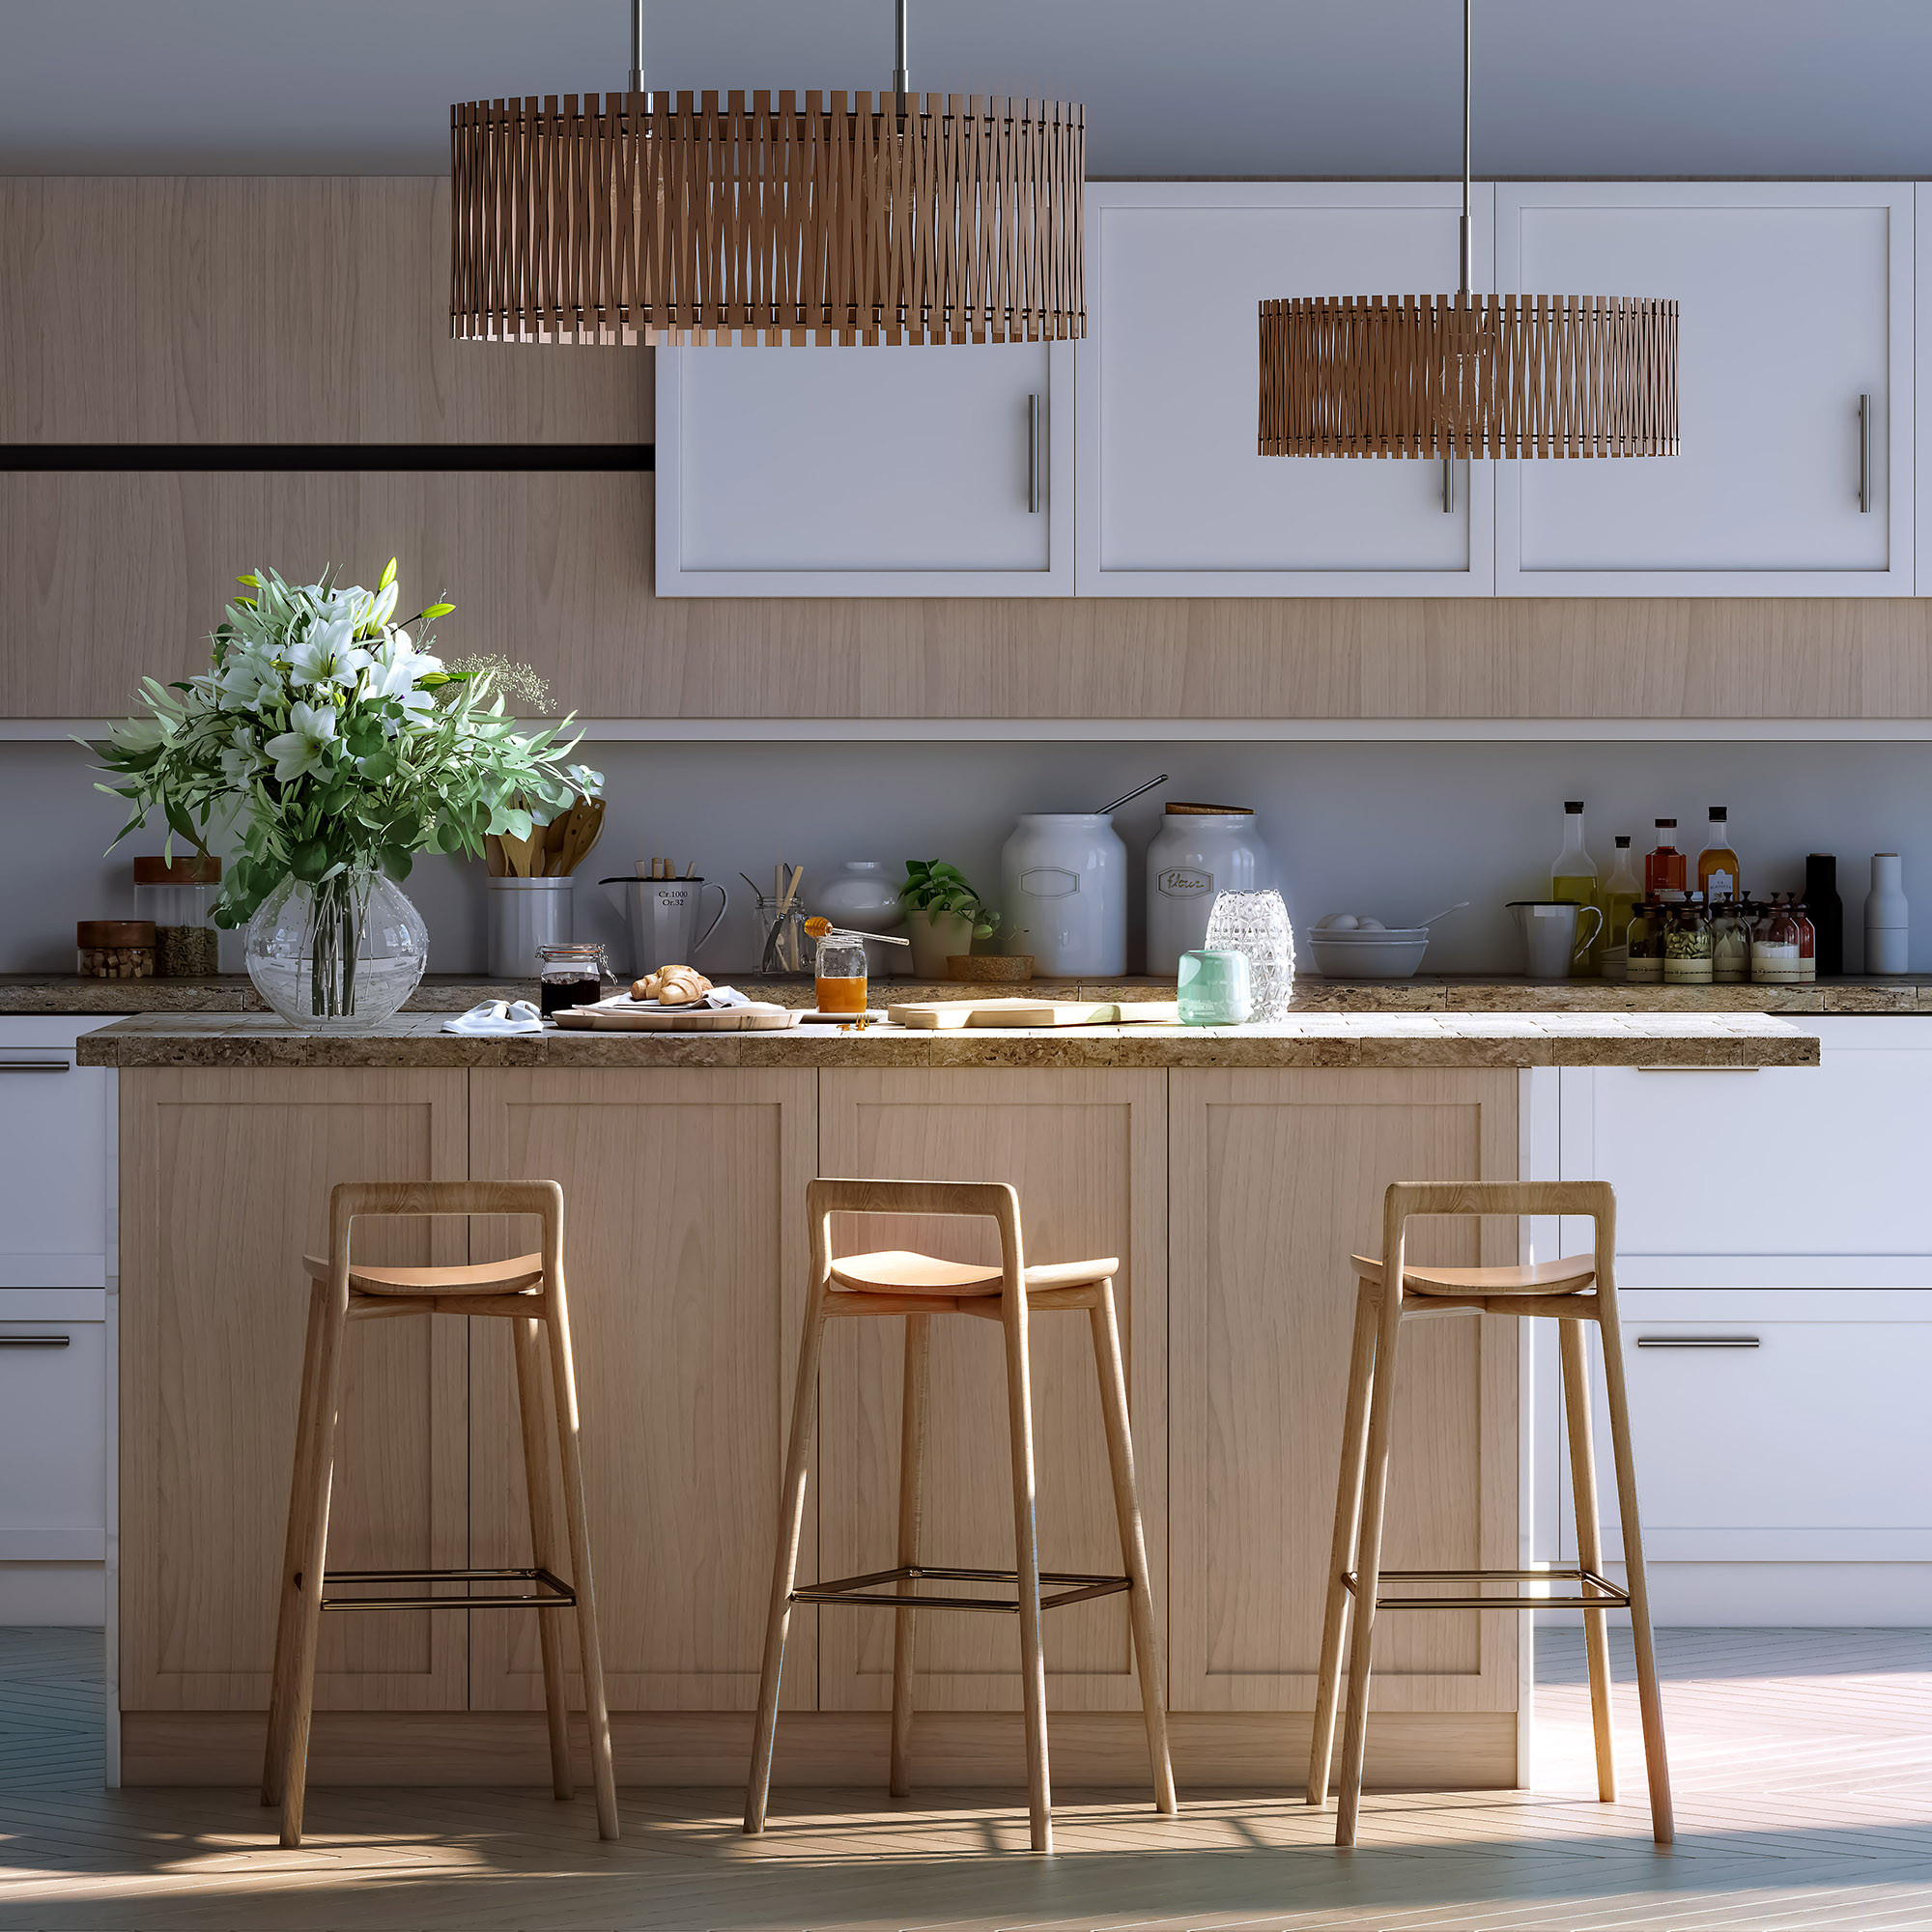 Studio Kitchen  3ds Max V-Ray Photoshop Asset: 3dBrute Materials and Lighting Rendering Lente Scura 5SRW - Learning V-Ray Method